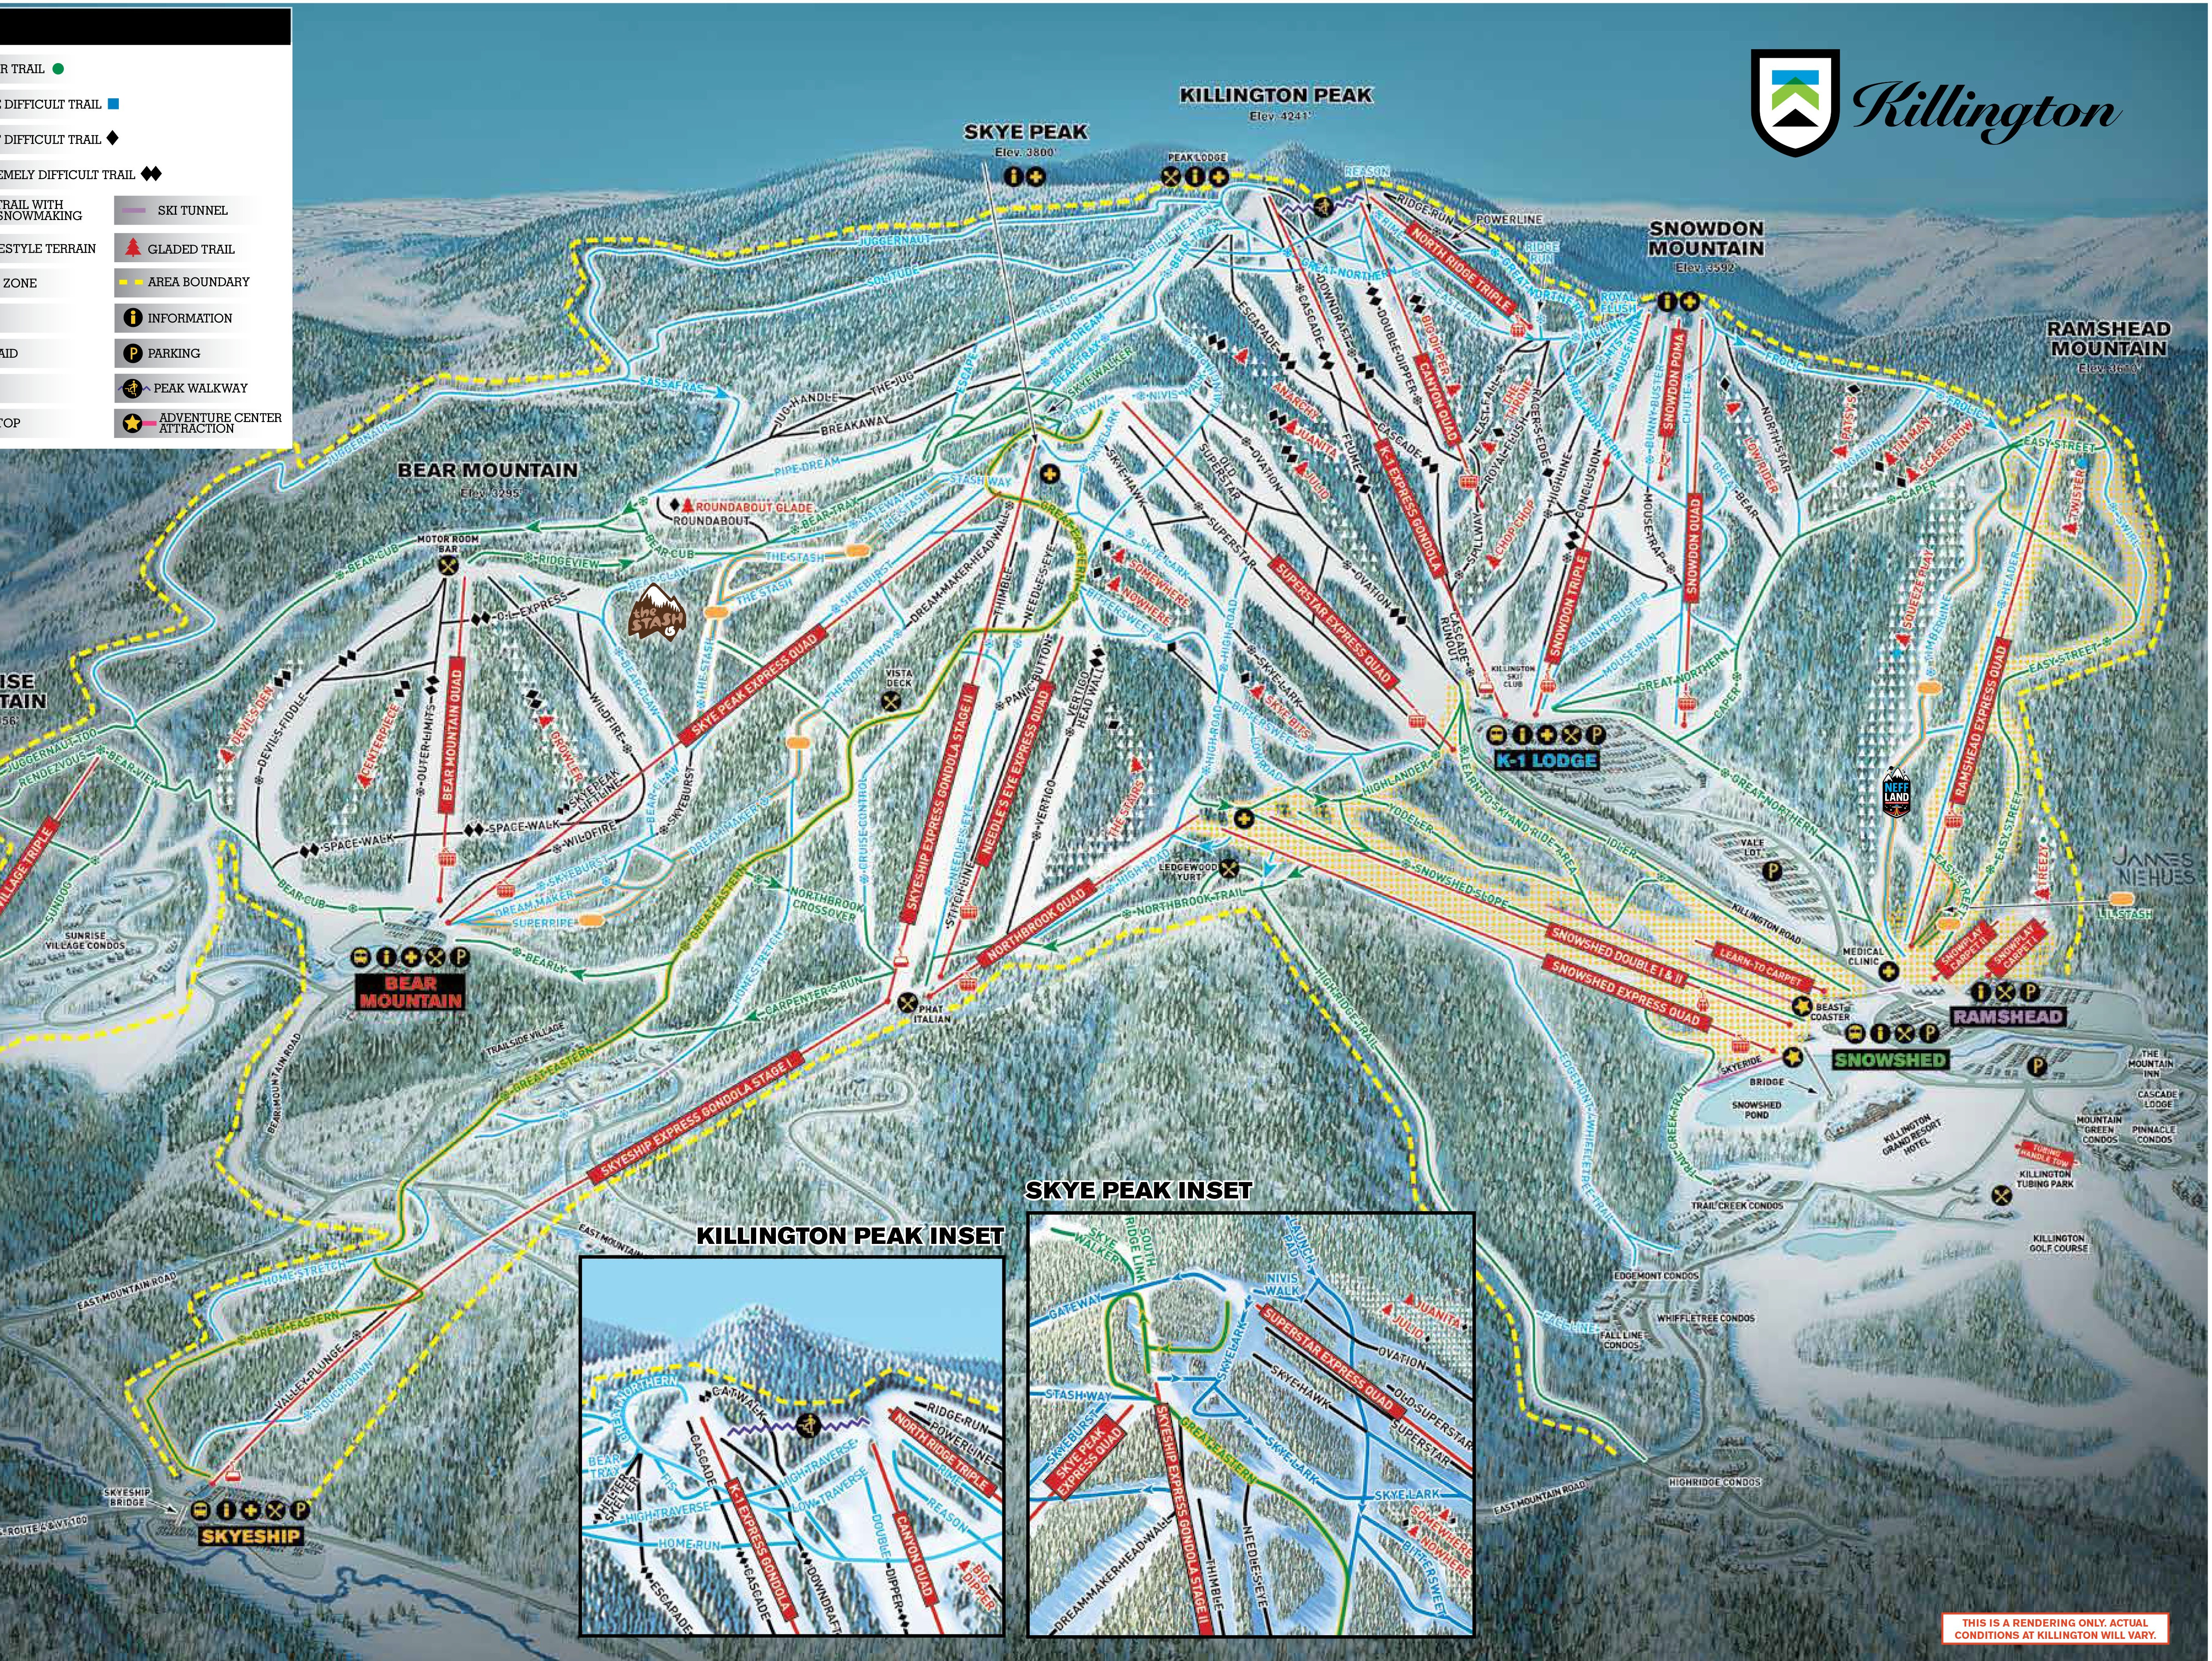 killington ski map with Killington Ski Resort Guide Goods on Pl 2 Dest CABN  param 0 0 5 together with Worldview 2 Hurricane Irene furthermore Taos Ski Valley Sells Billionaire Conservationist also Resort Maps furthermore Killington Ski Resort Guide Goods.